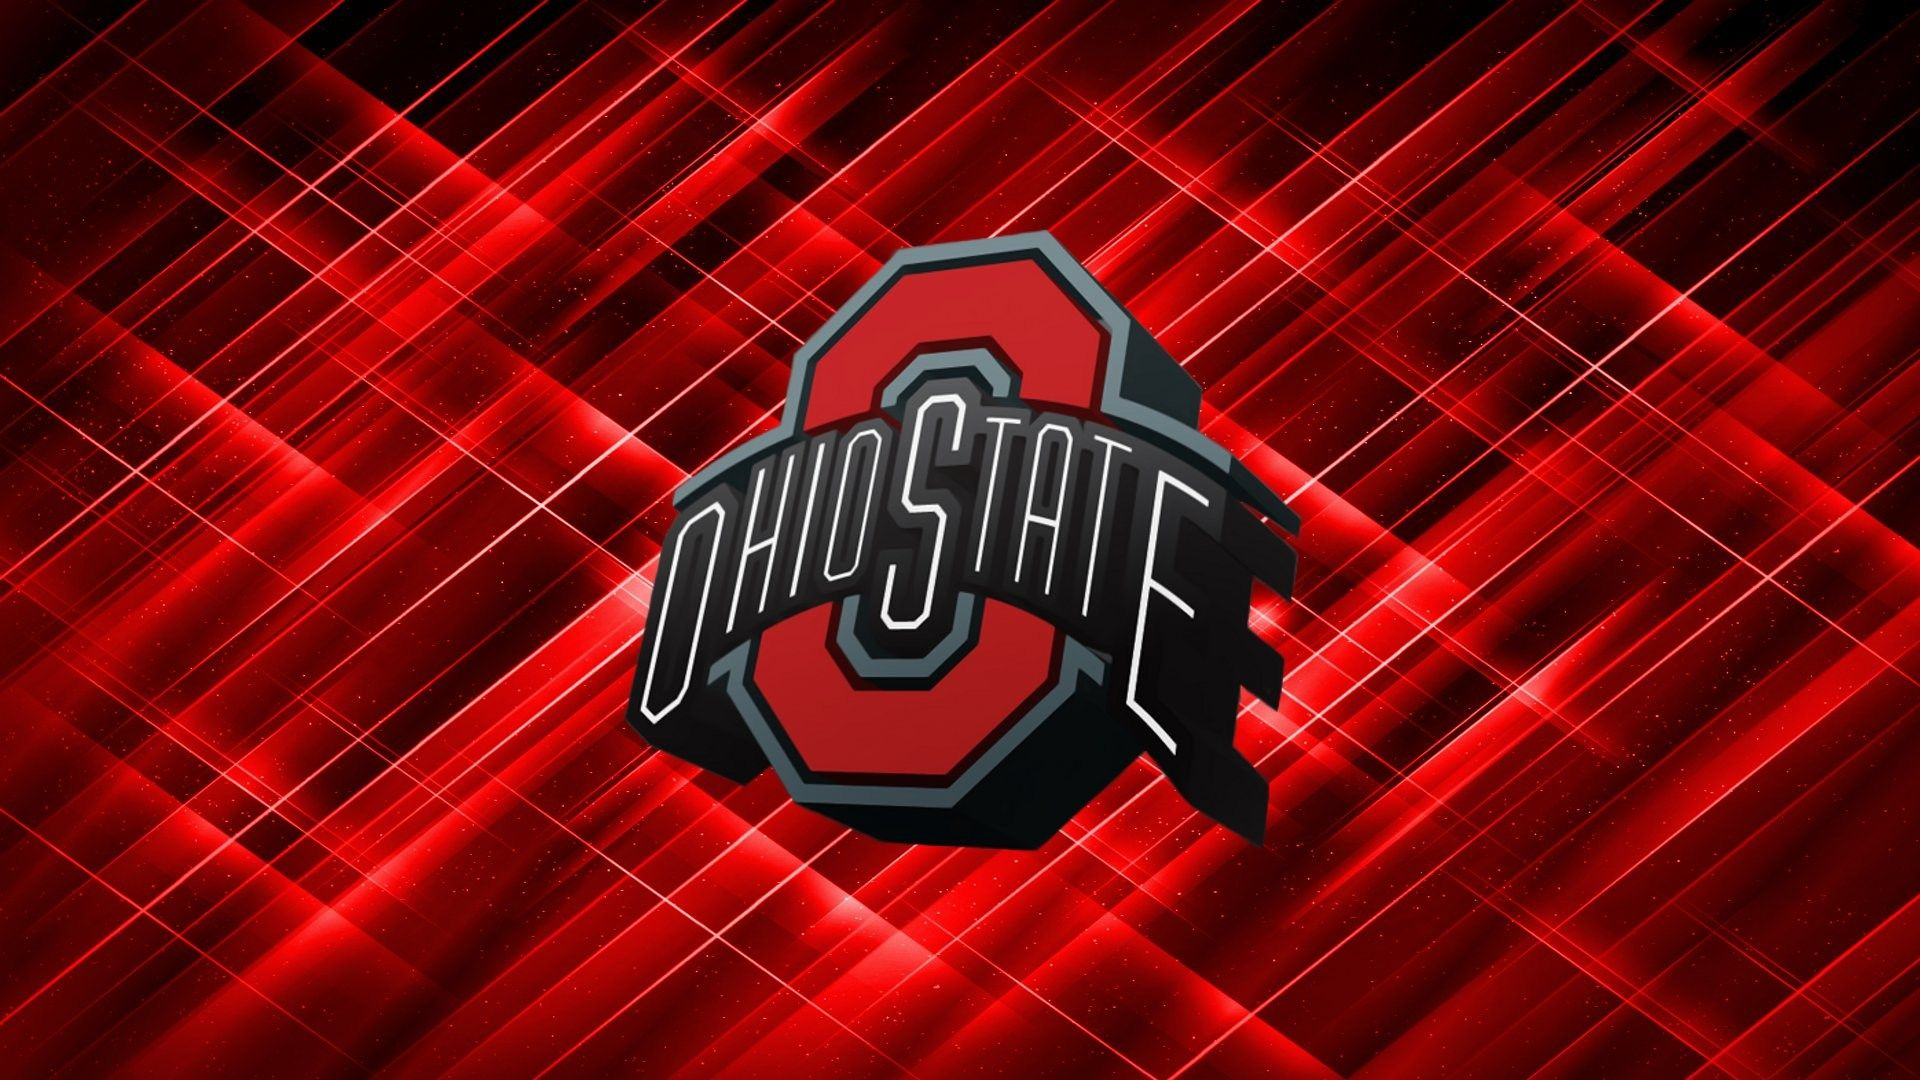 OSU Wallpaper 12 HD And Background Photos Of For Fans Ohio State Football Images